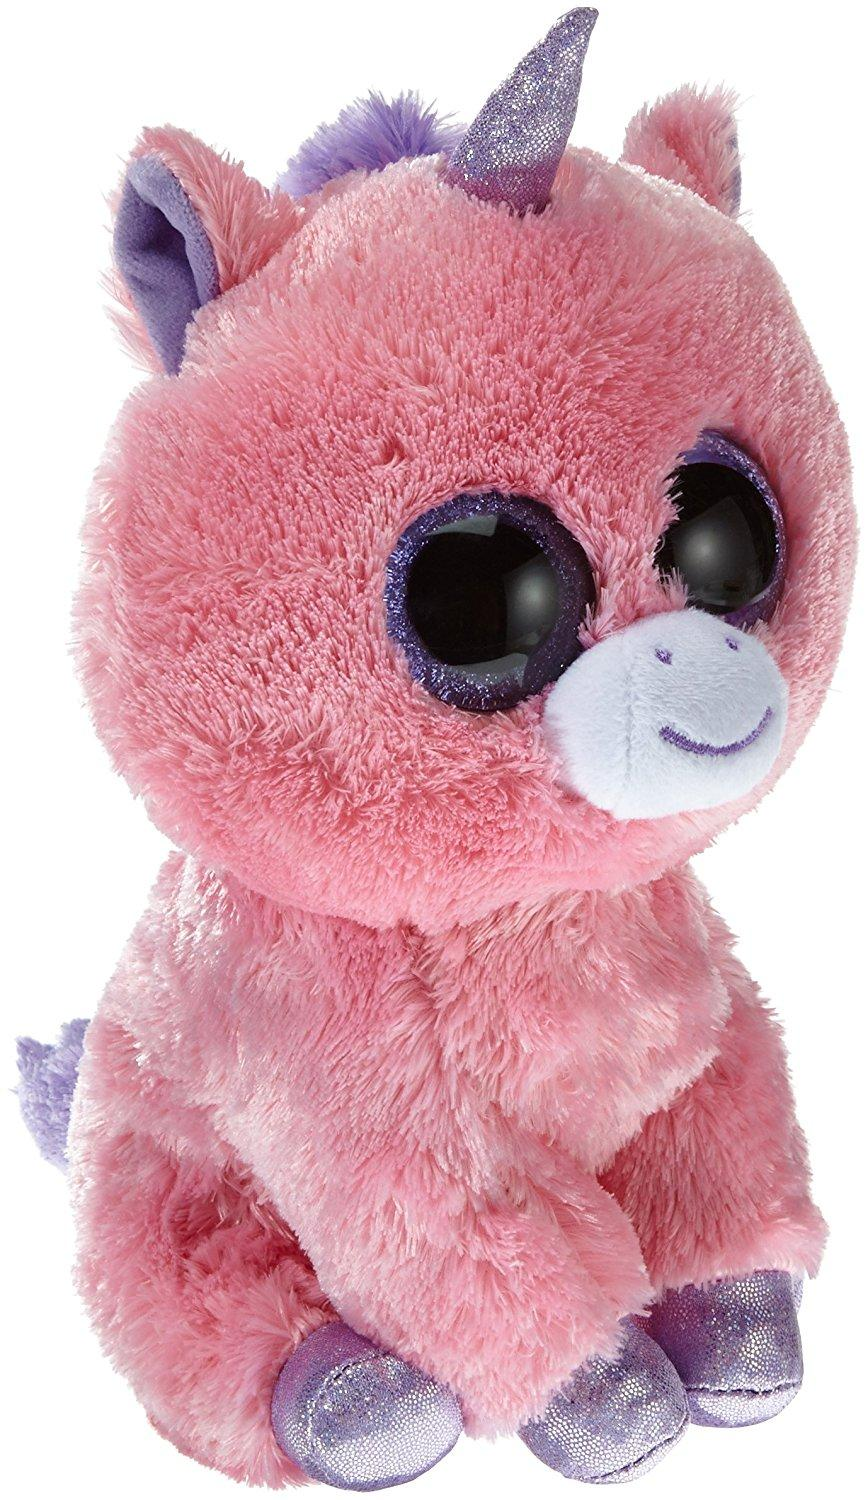 BEANIE BOOS 28cm MAGIC T36963 BINNEY e SMITH